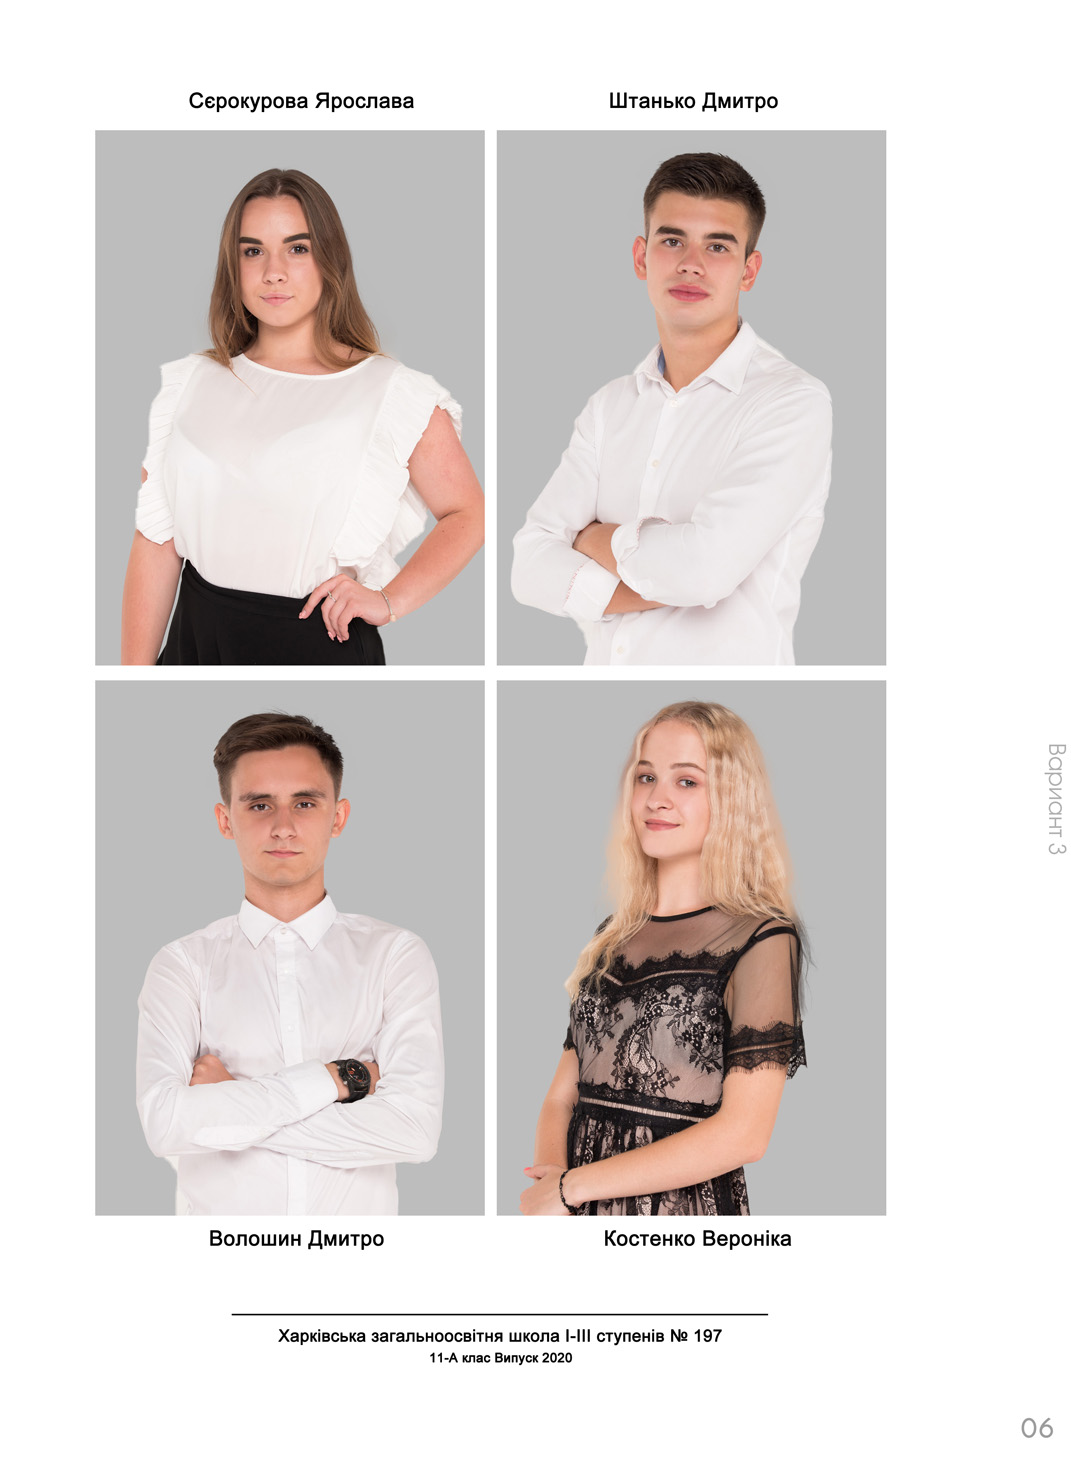 https://school-photo.com.ua/wp-content/uploads/2019/09/06-copy.jpg